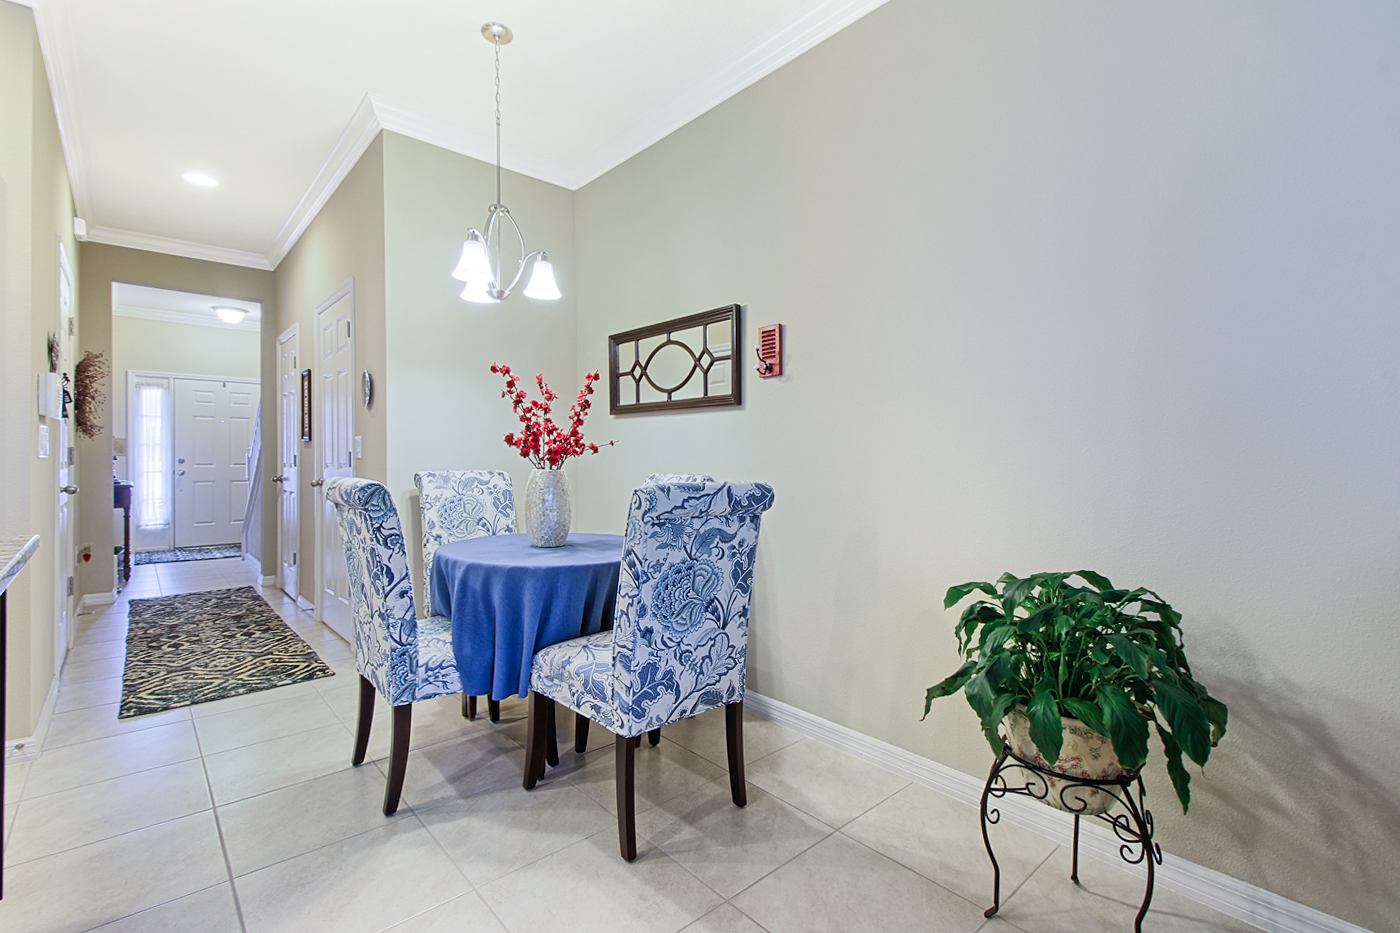 Pinellas park fl townhouse for sale your foyer greets you with a warm welcome and a path to either your second floor or kitchenliving room your first floor houses an open floor plan and half m4hsunfo